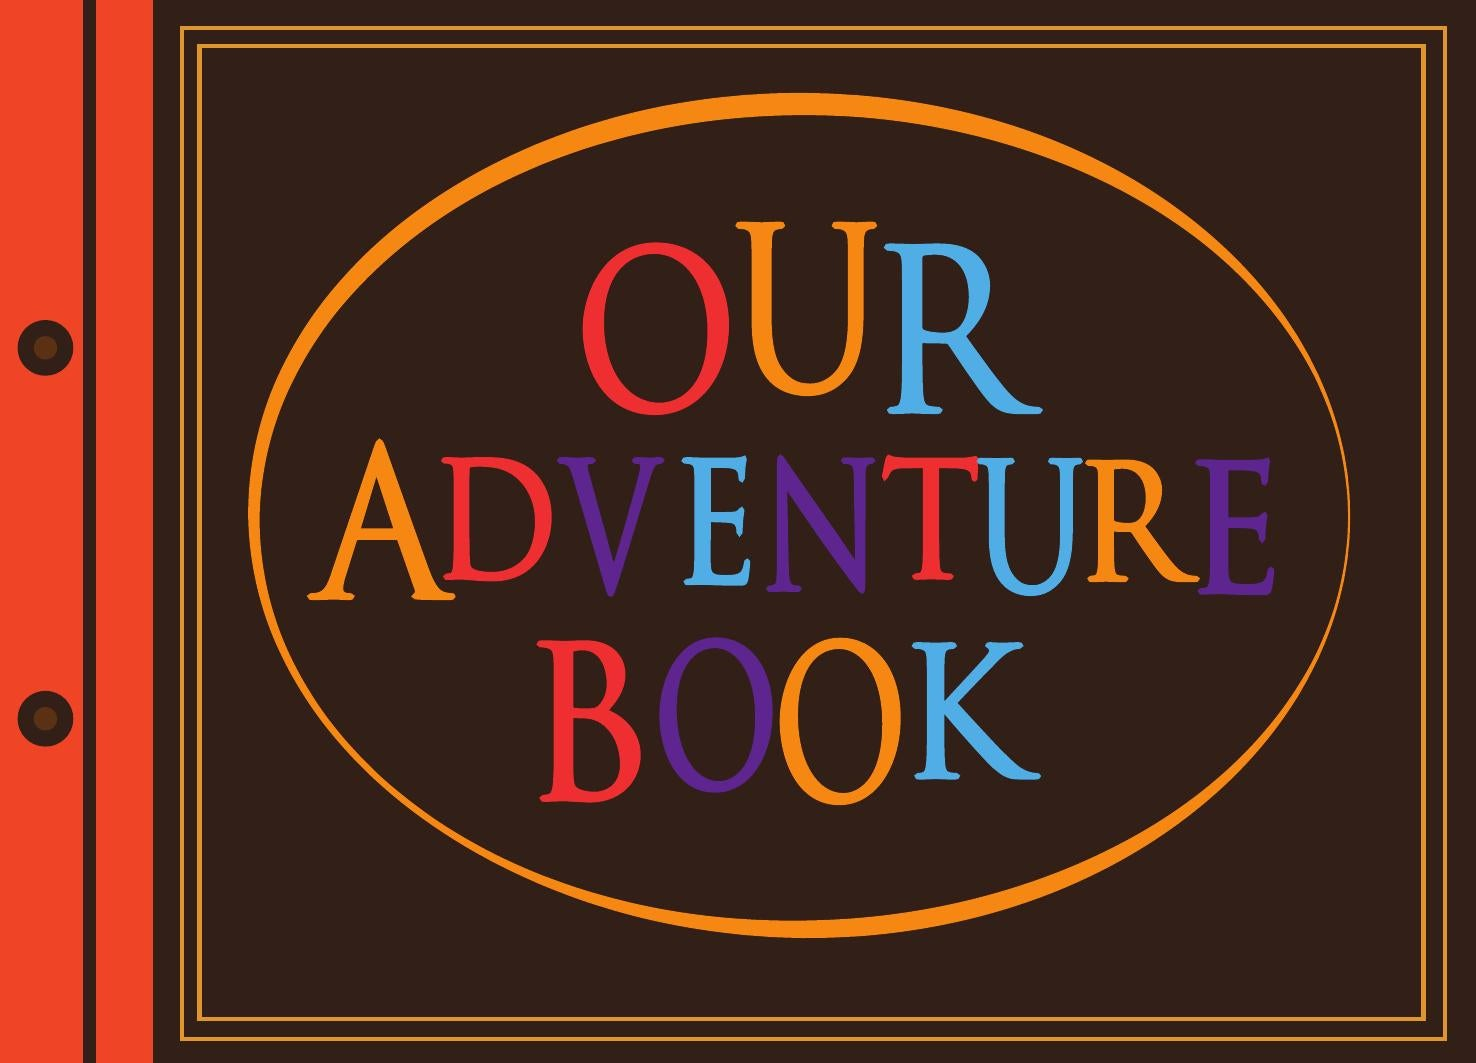 My Adventure Book Printable Cover ~ Our adventure book muestra by backdrops peru issuu